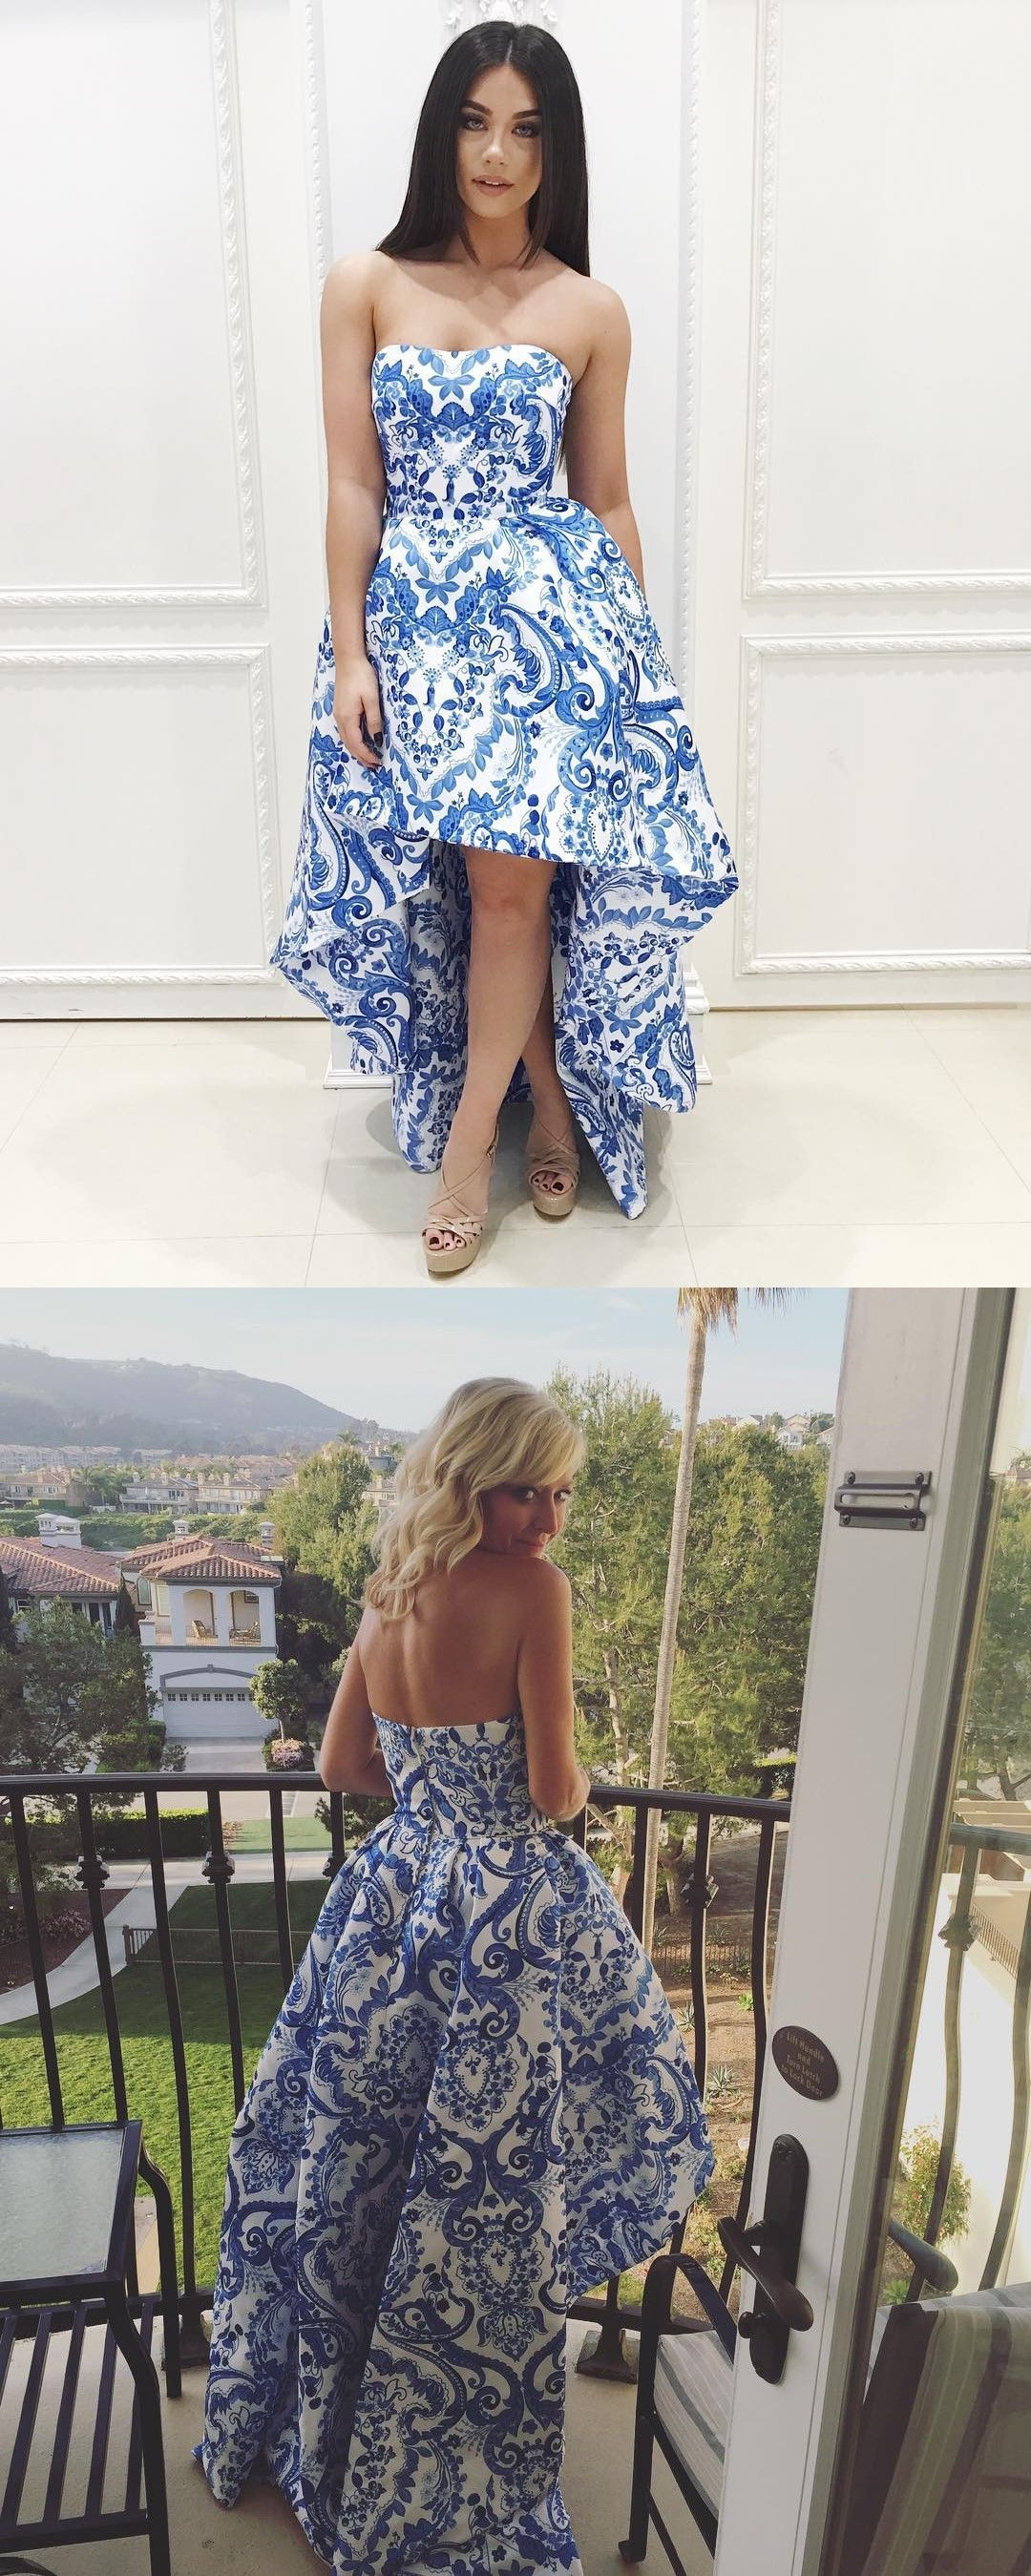 57d6269c99bb Strapless High Low Blue and White Floral Homecoming Dress ...